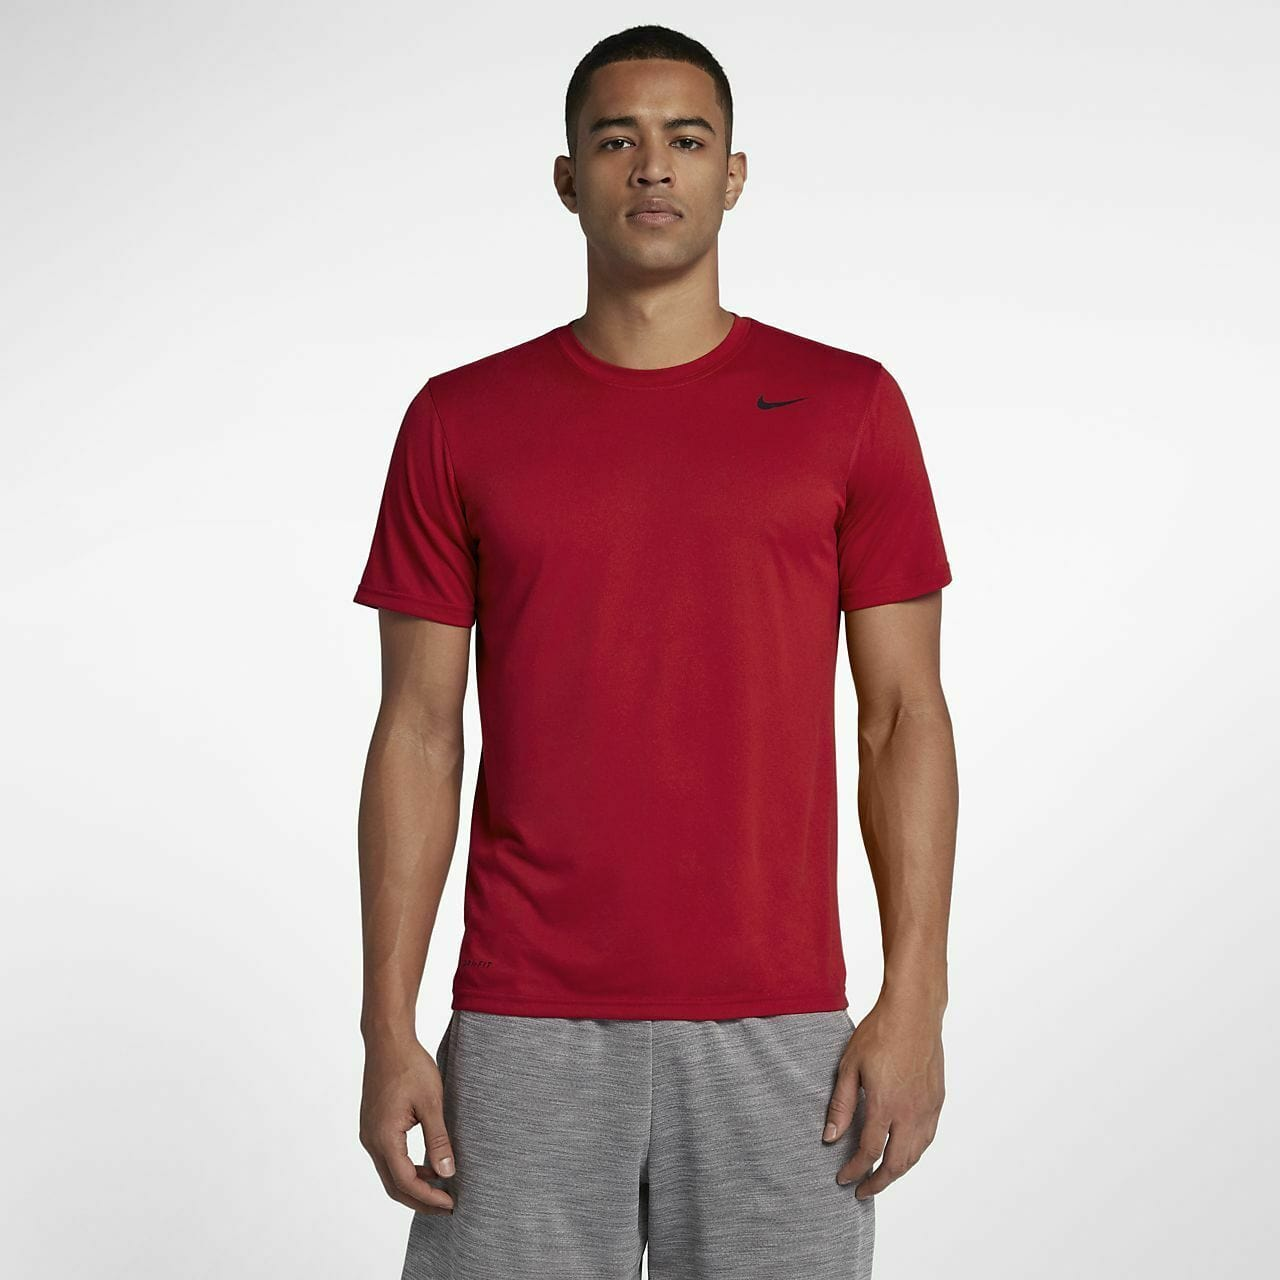 572ce43d Nike Legend 2.0 T-Shirt - Big & Tall Mens Sizes